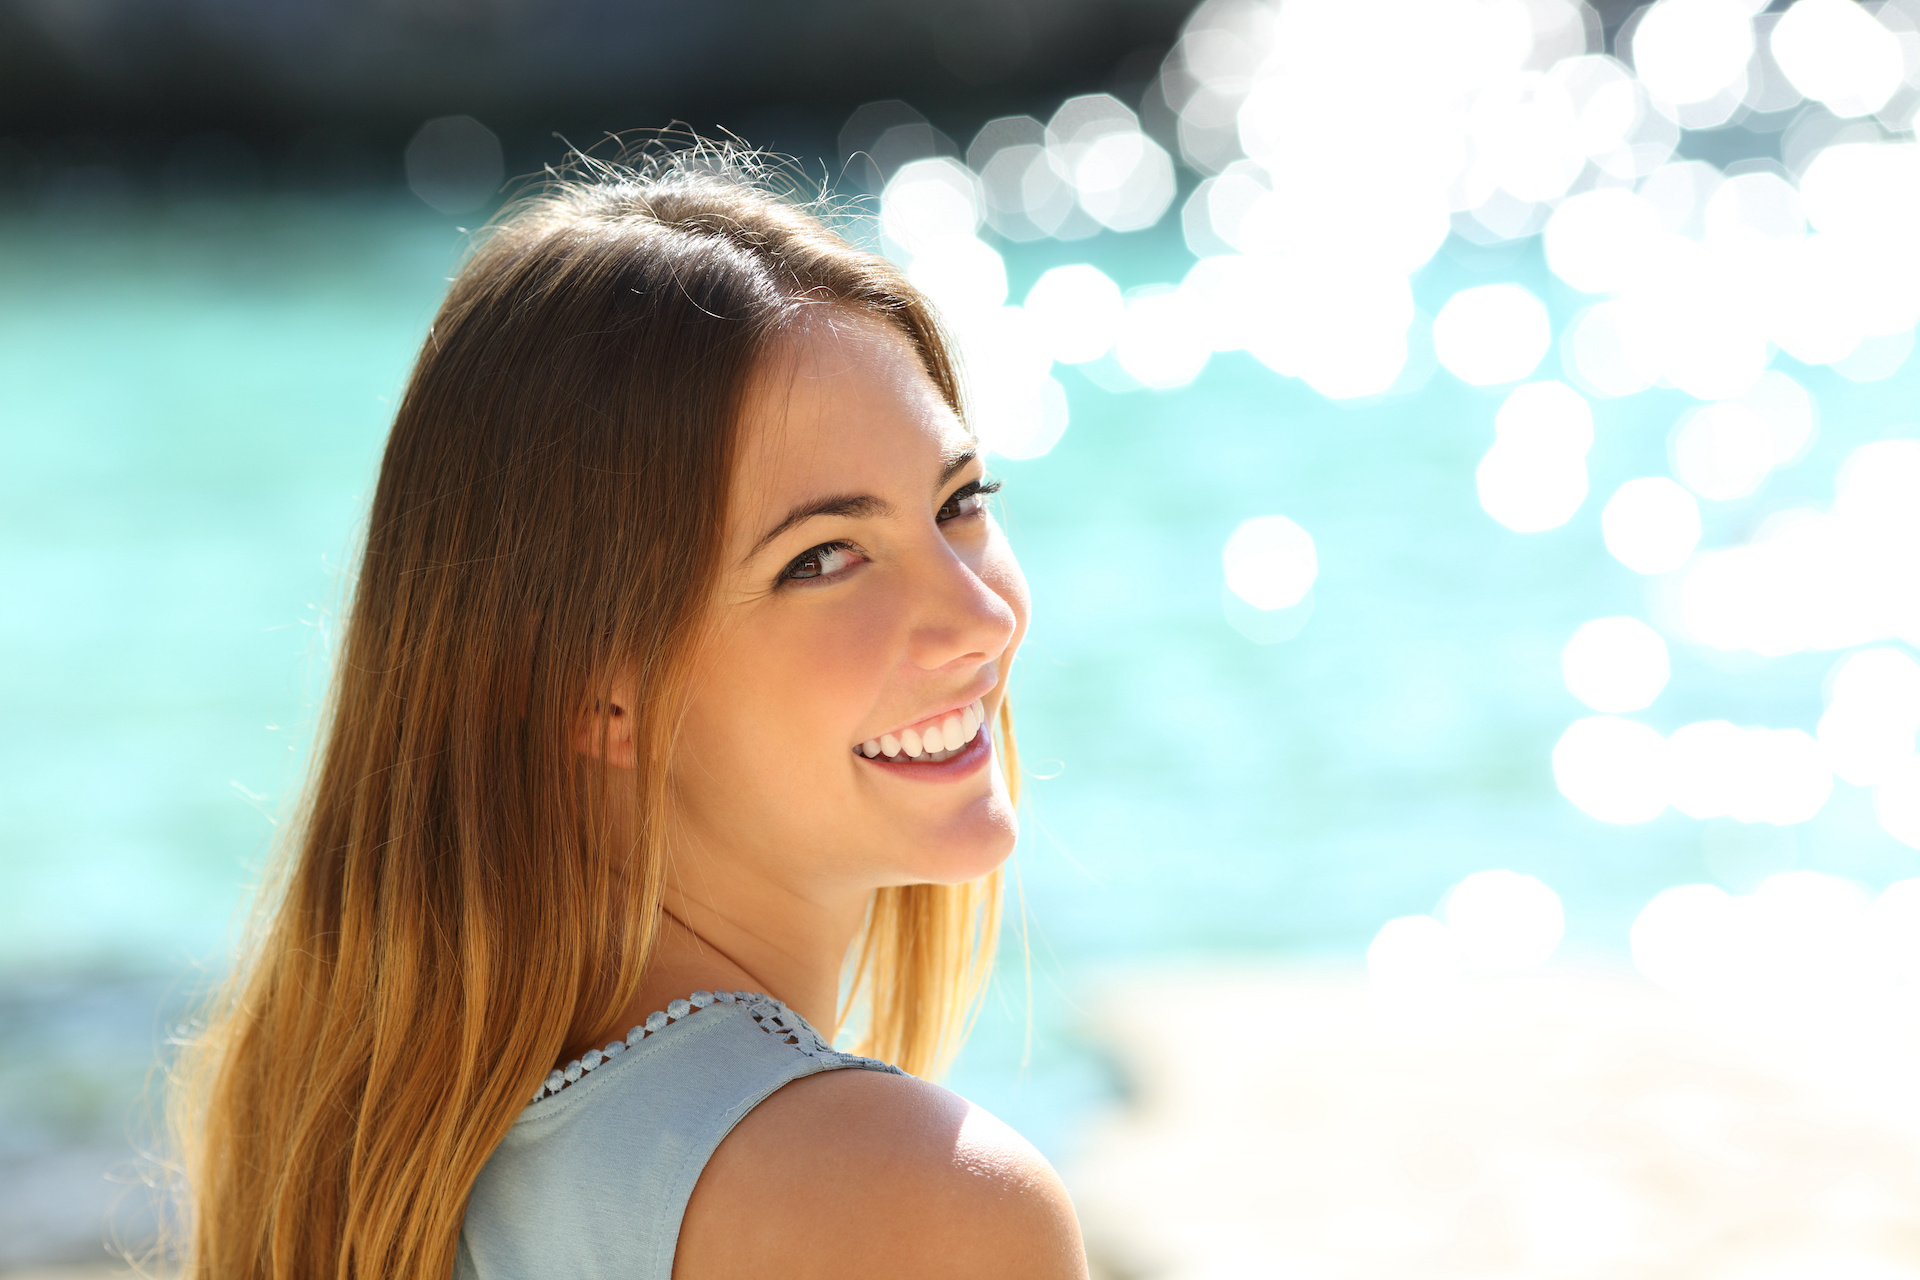 We help you get your smile back